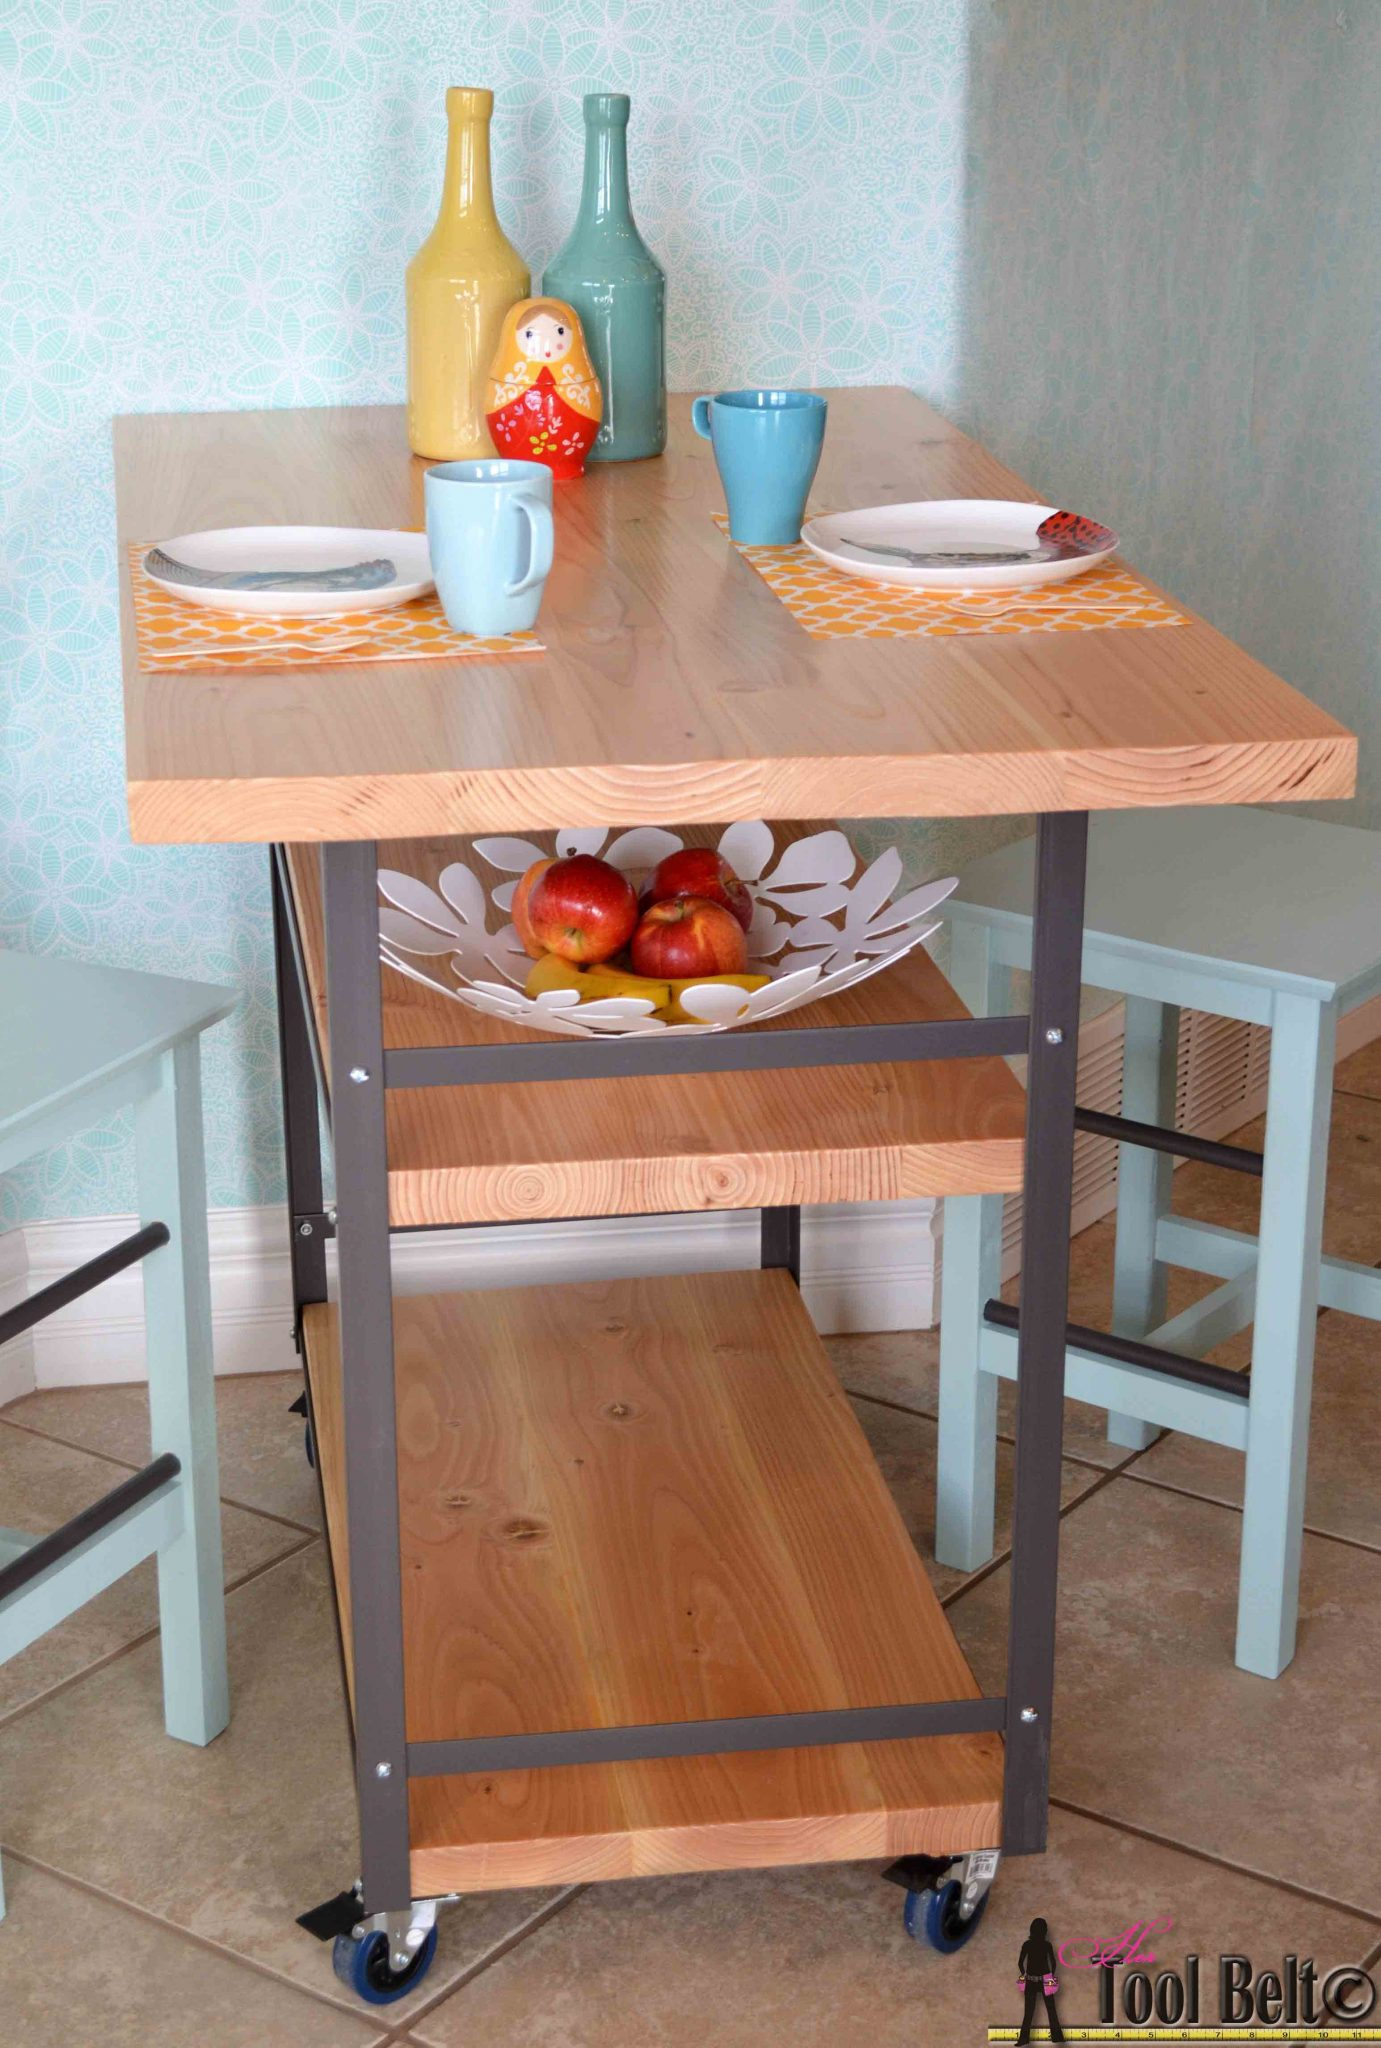 Build a stylish DIY multi-functional table.  Free plans for a rolling industrial counter table, rolling island with lots of open storage.